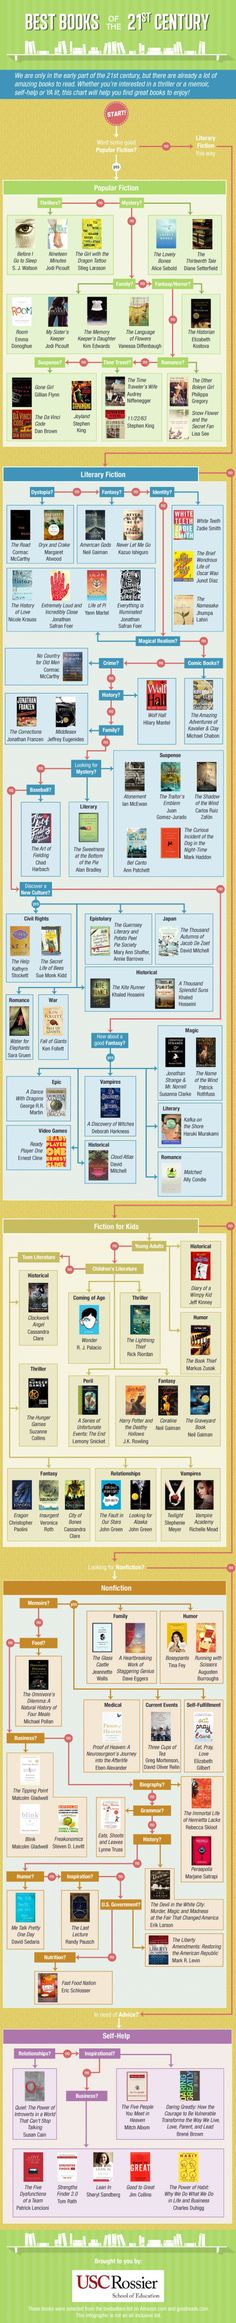 "Best Books of the 21st Century Infographic <-- My biggest problem with this list is that their ""popular"" fiction is still pretty darn ""literary"""